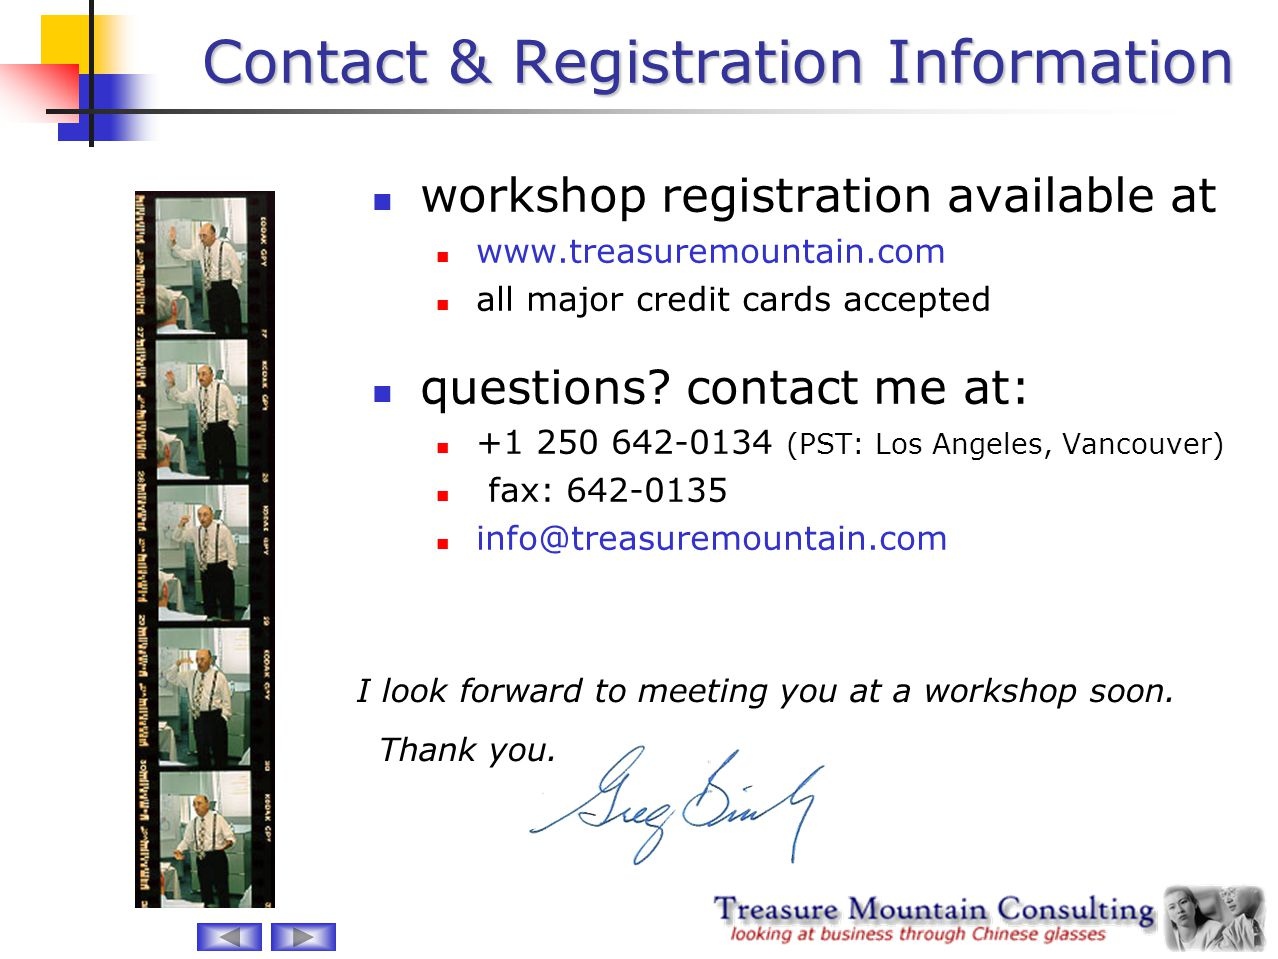 Contact & Registration Information